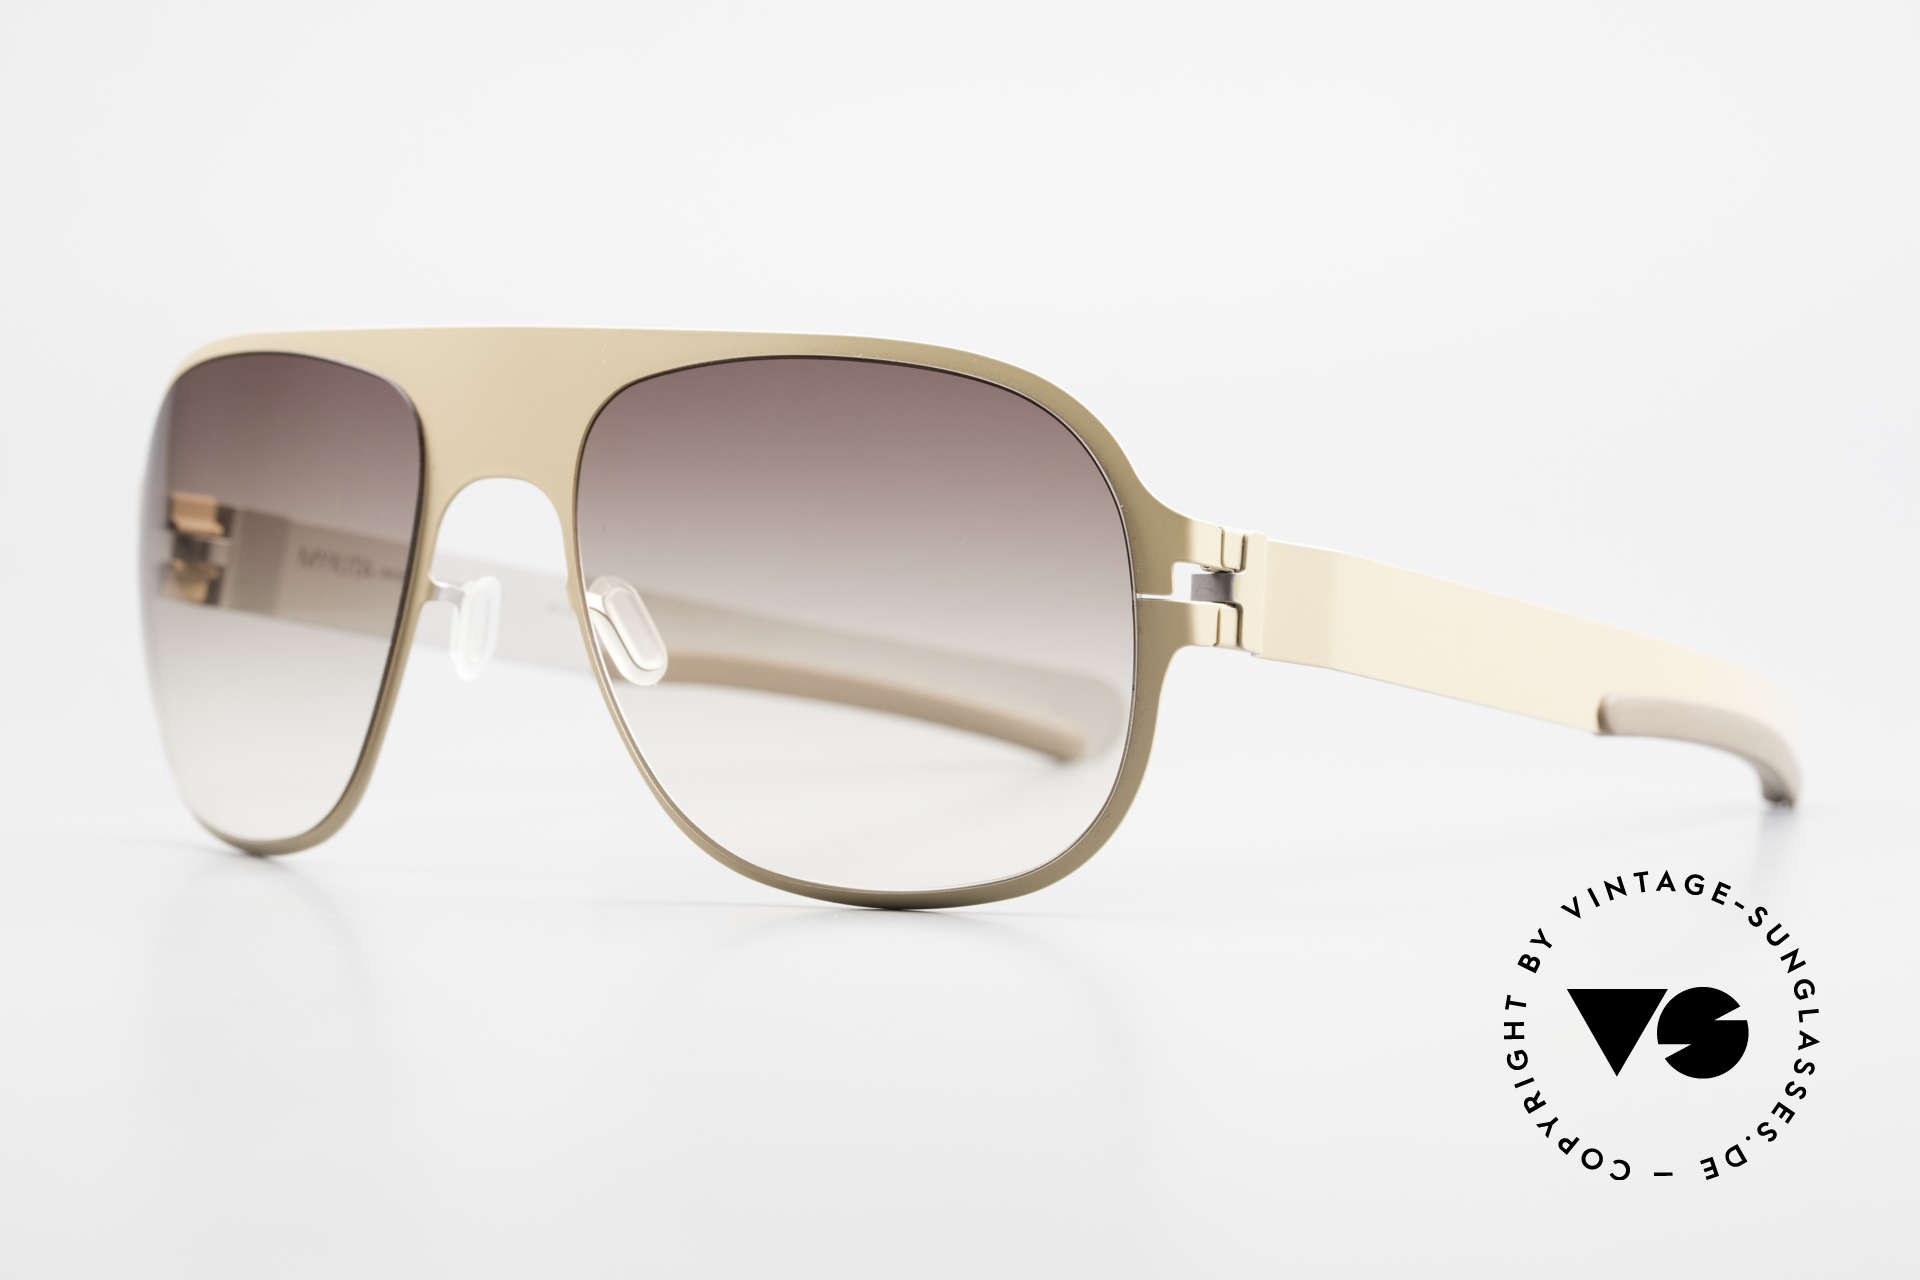 Mykita Rodney Designer Sunglasses Limited, top-notch quality, made in Germany (Berlin-Kreuzberg), Made for Men